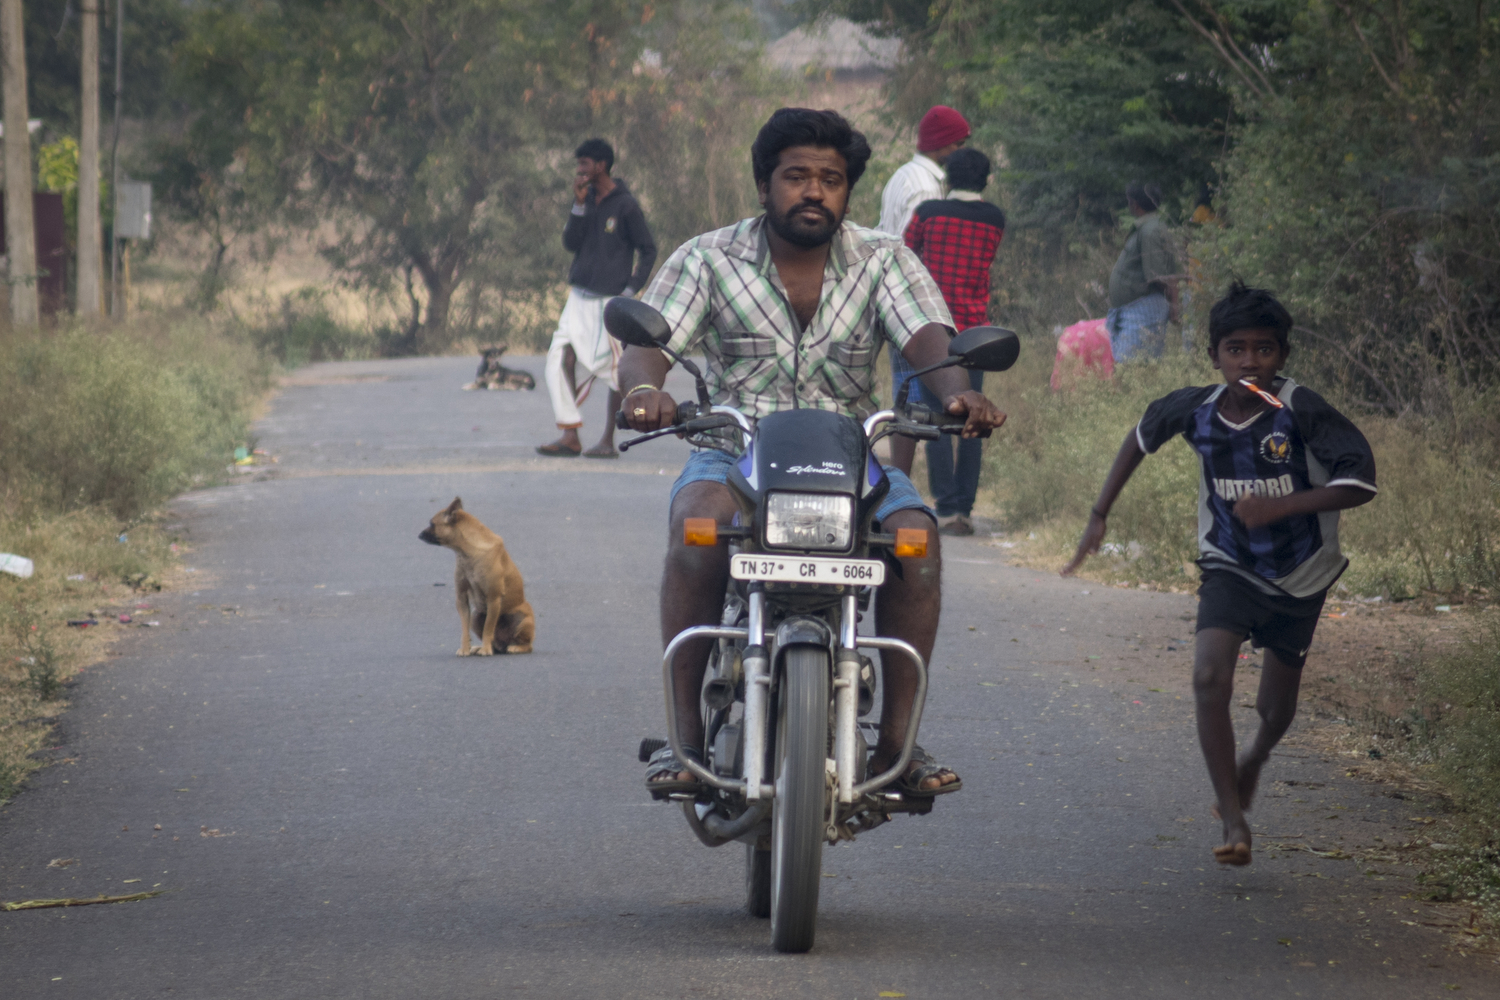 Mohanapriya. P - A man on a motorbike and a boy named Shriram race each other. They do this every morning for fun.